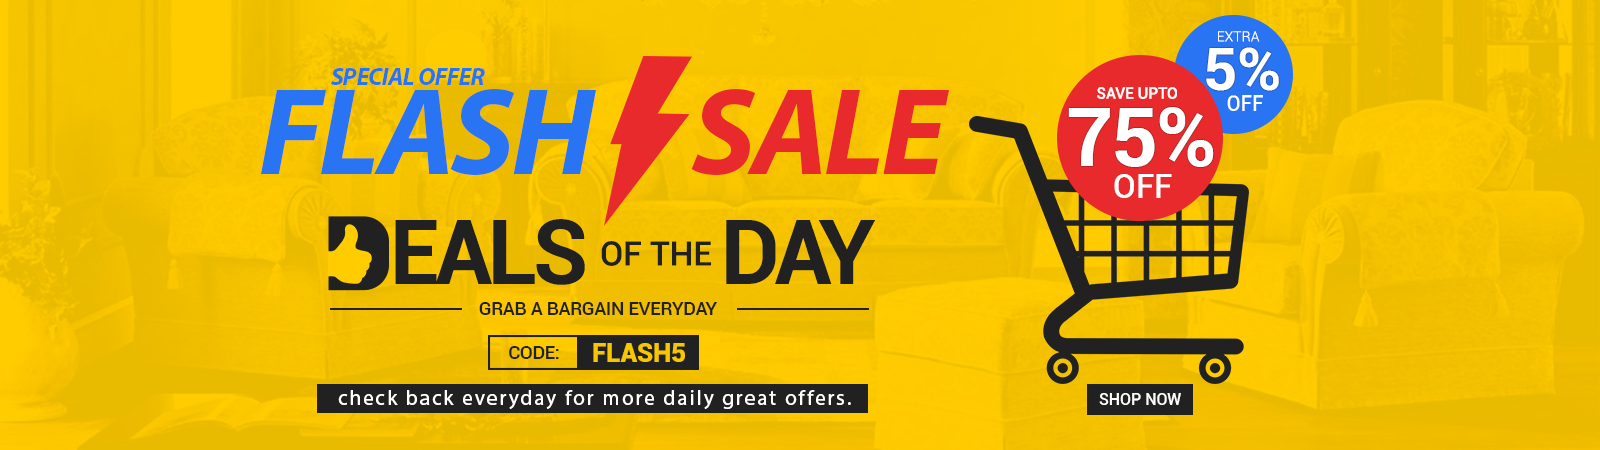 Flash Sale Deals of the Day at Online Furniture Store UK